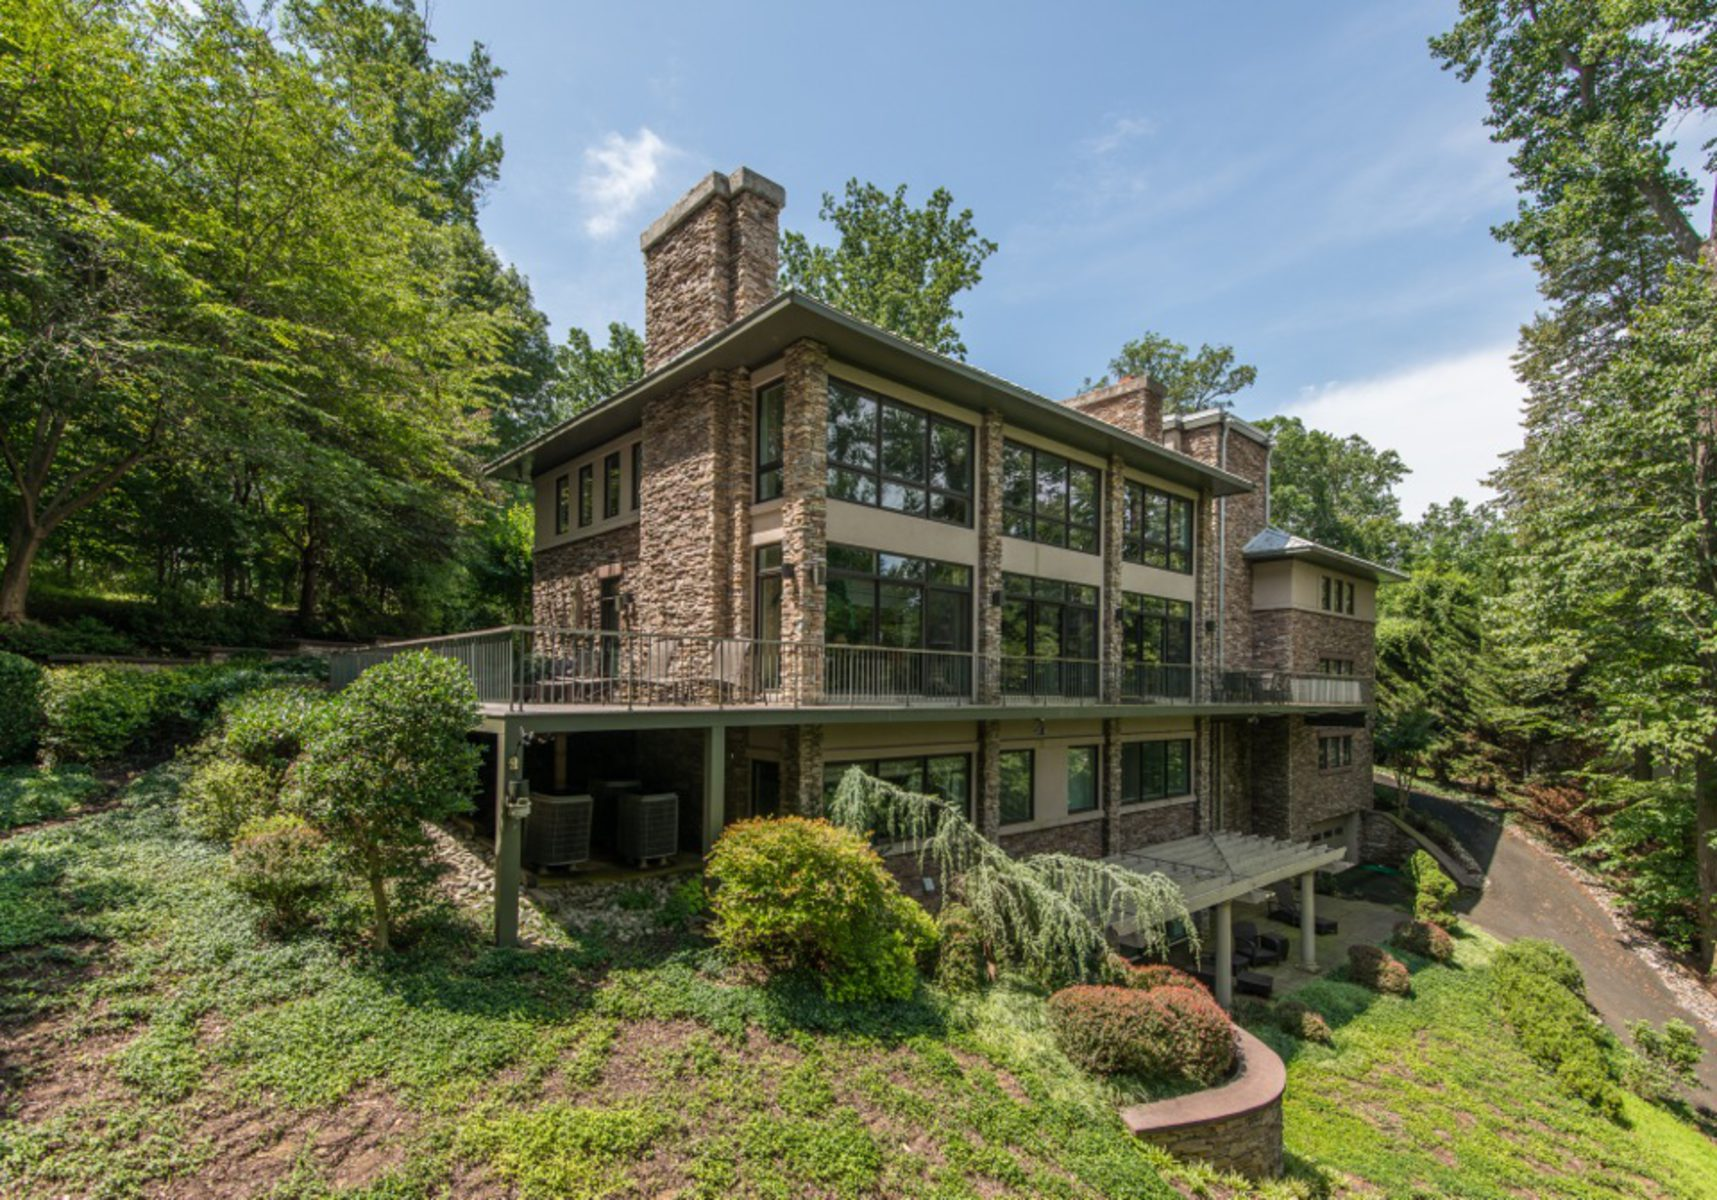 Additional photo for property listing at 7022 GREEN OAK DR 7022 GREEN OAK DR McLean, Virginia 22101 United States